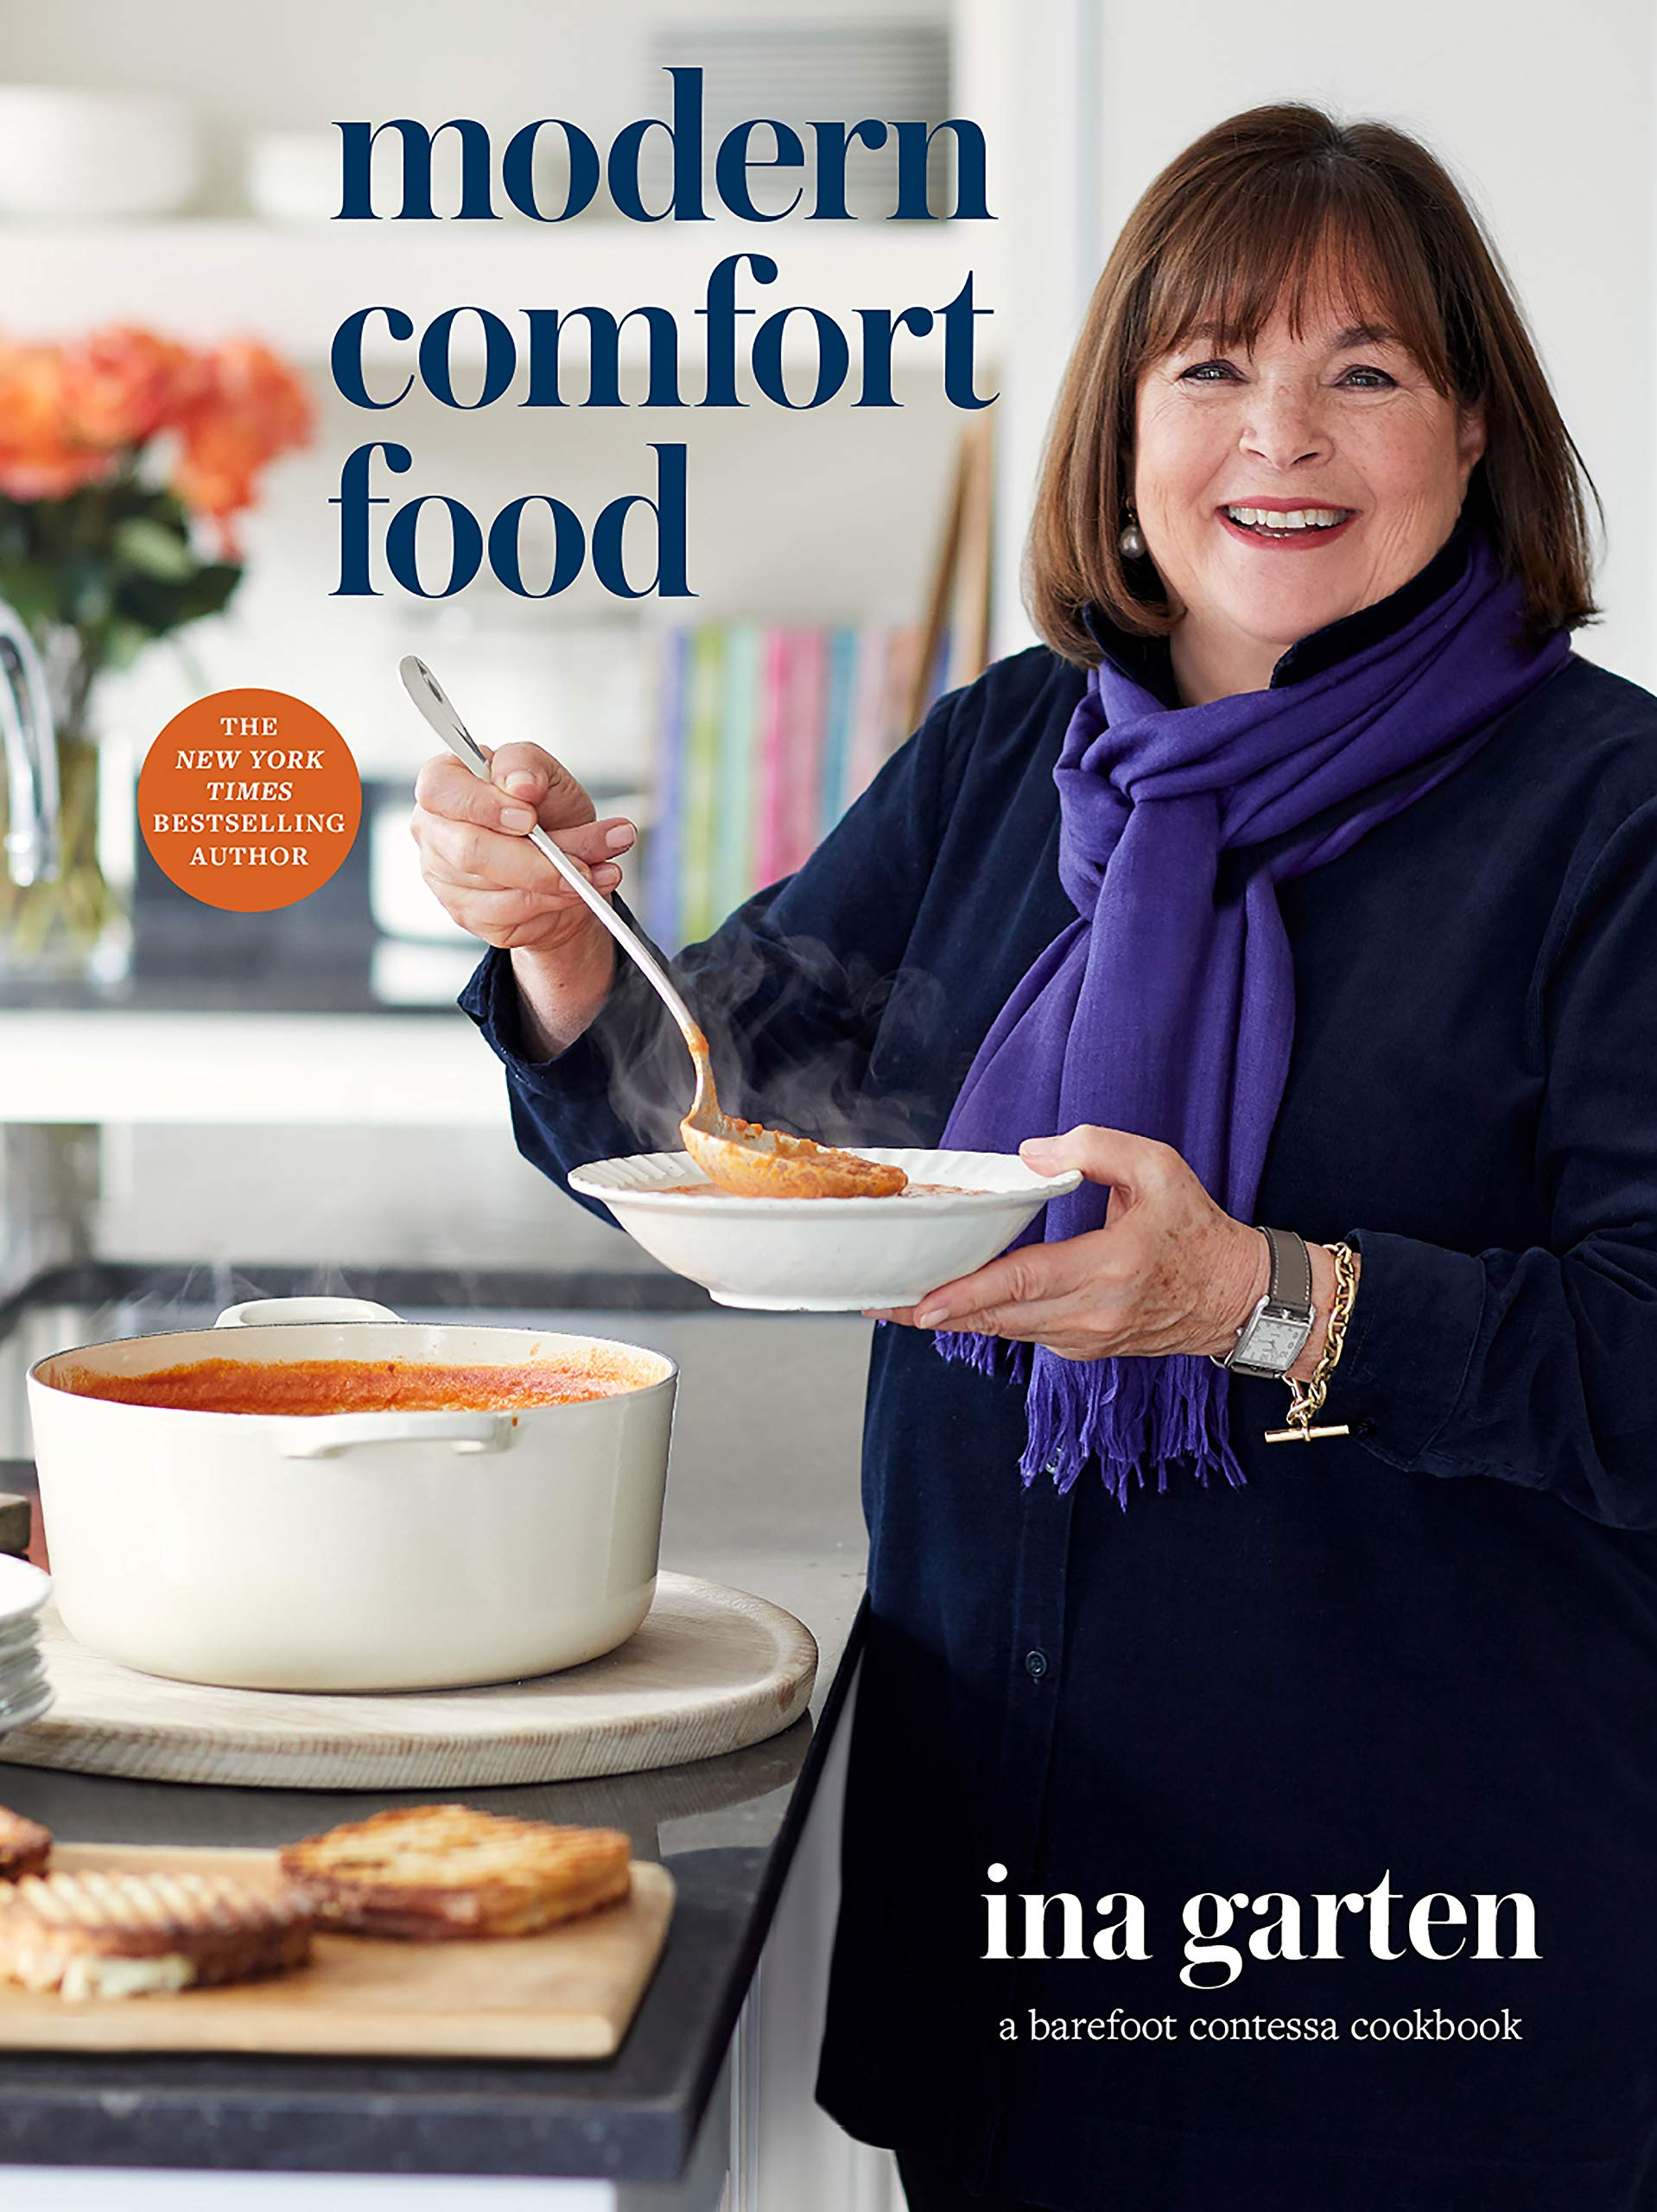 Modern Comfort Food: A Barefoot Contessa Cookbook